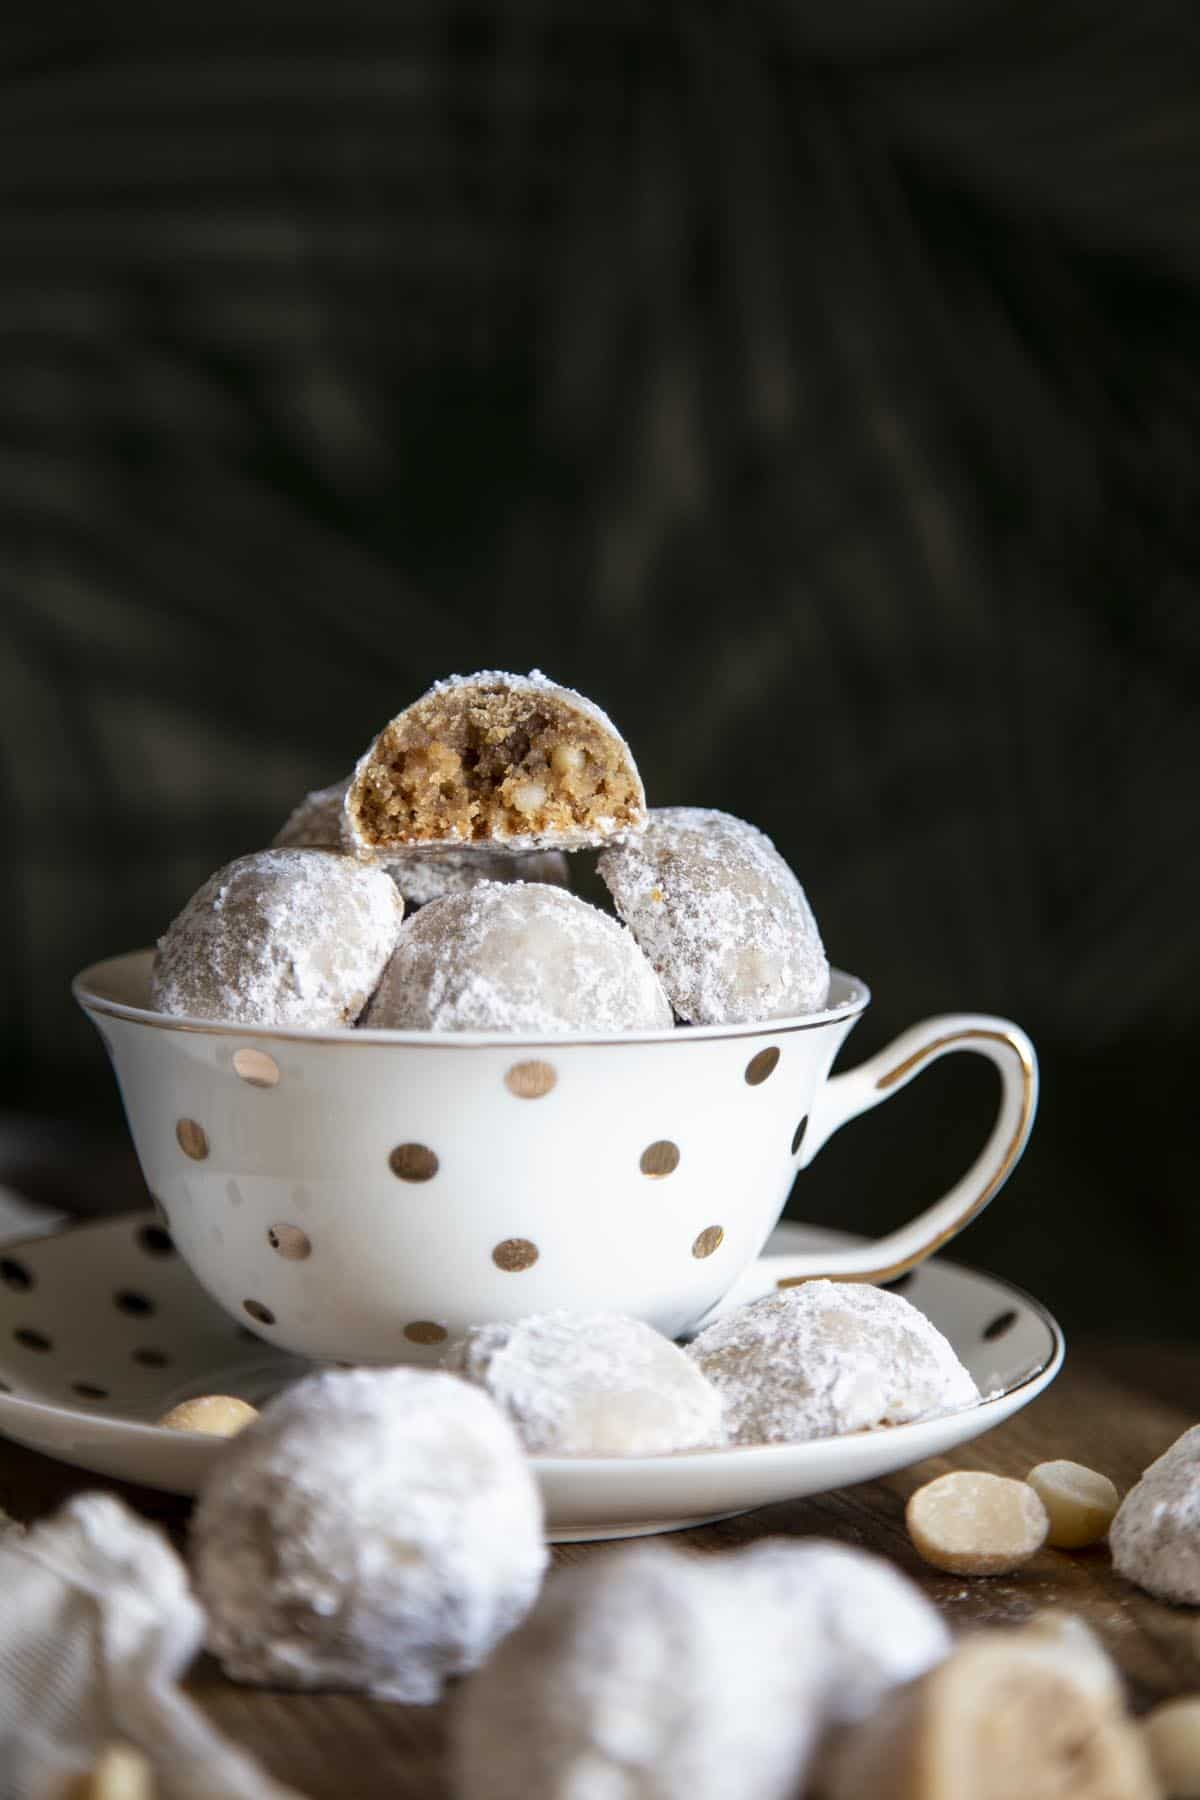 Snowball cookies in a tea cup with one half eaten cookie at top